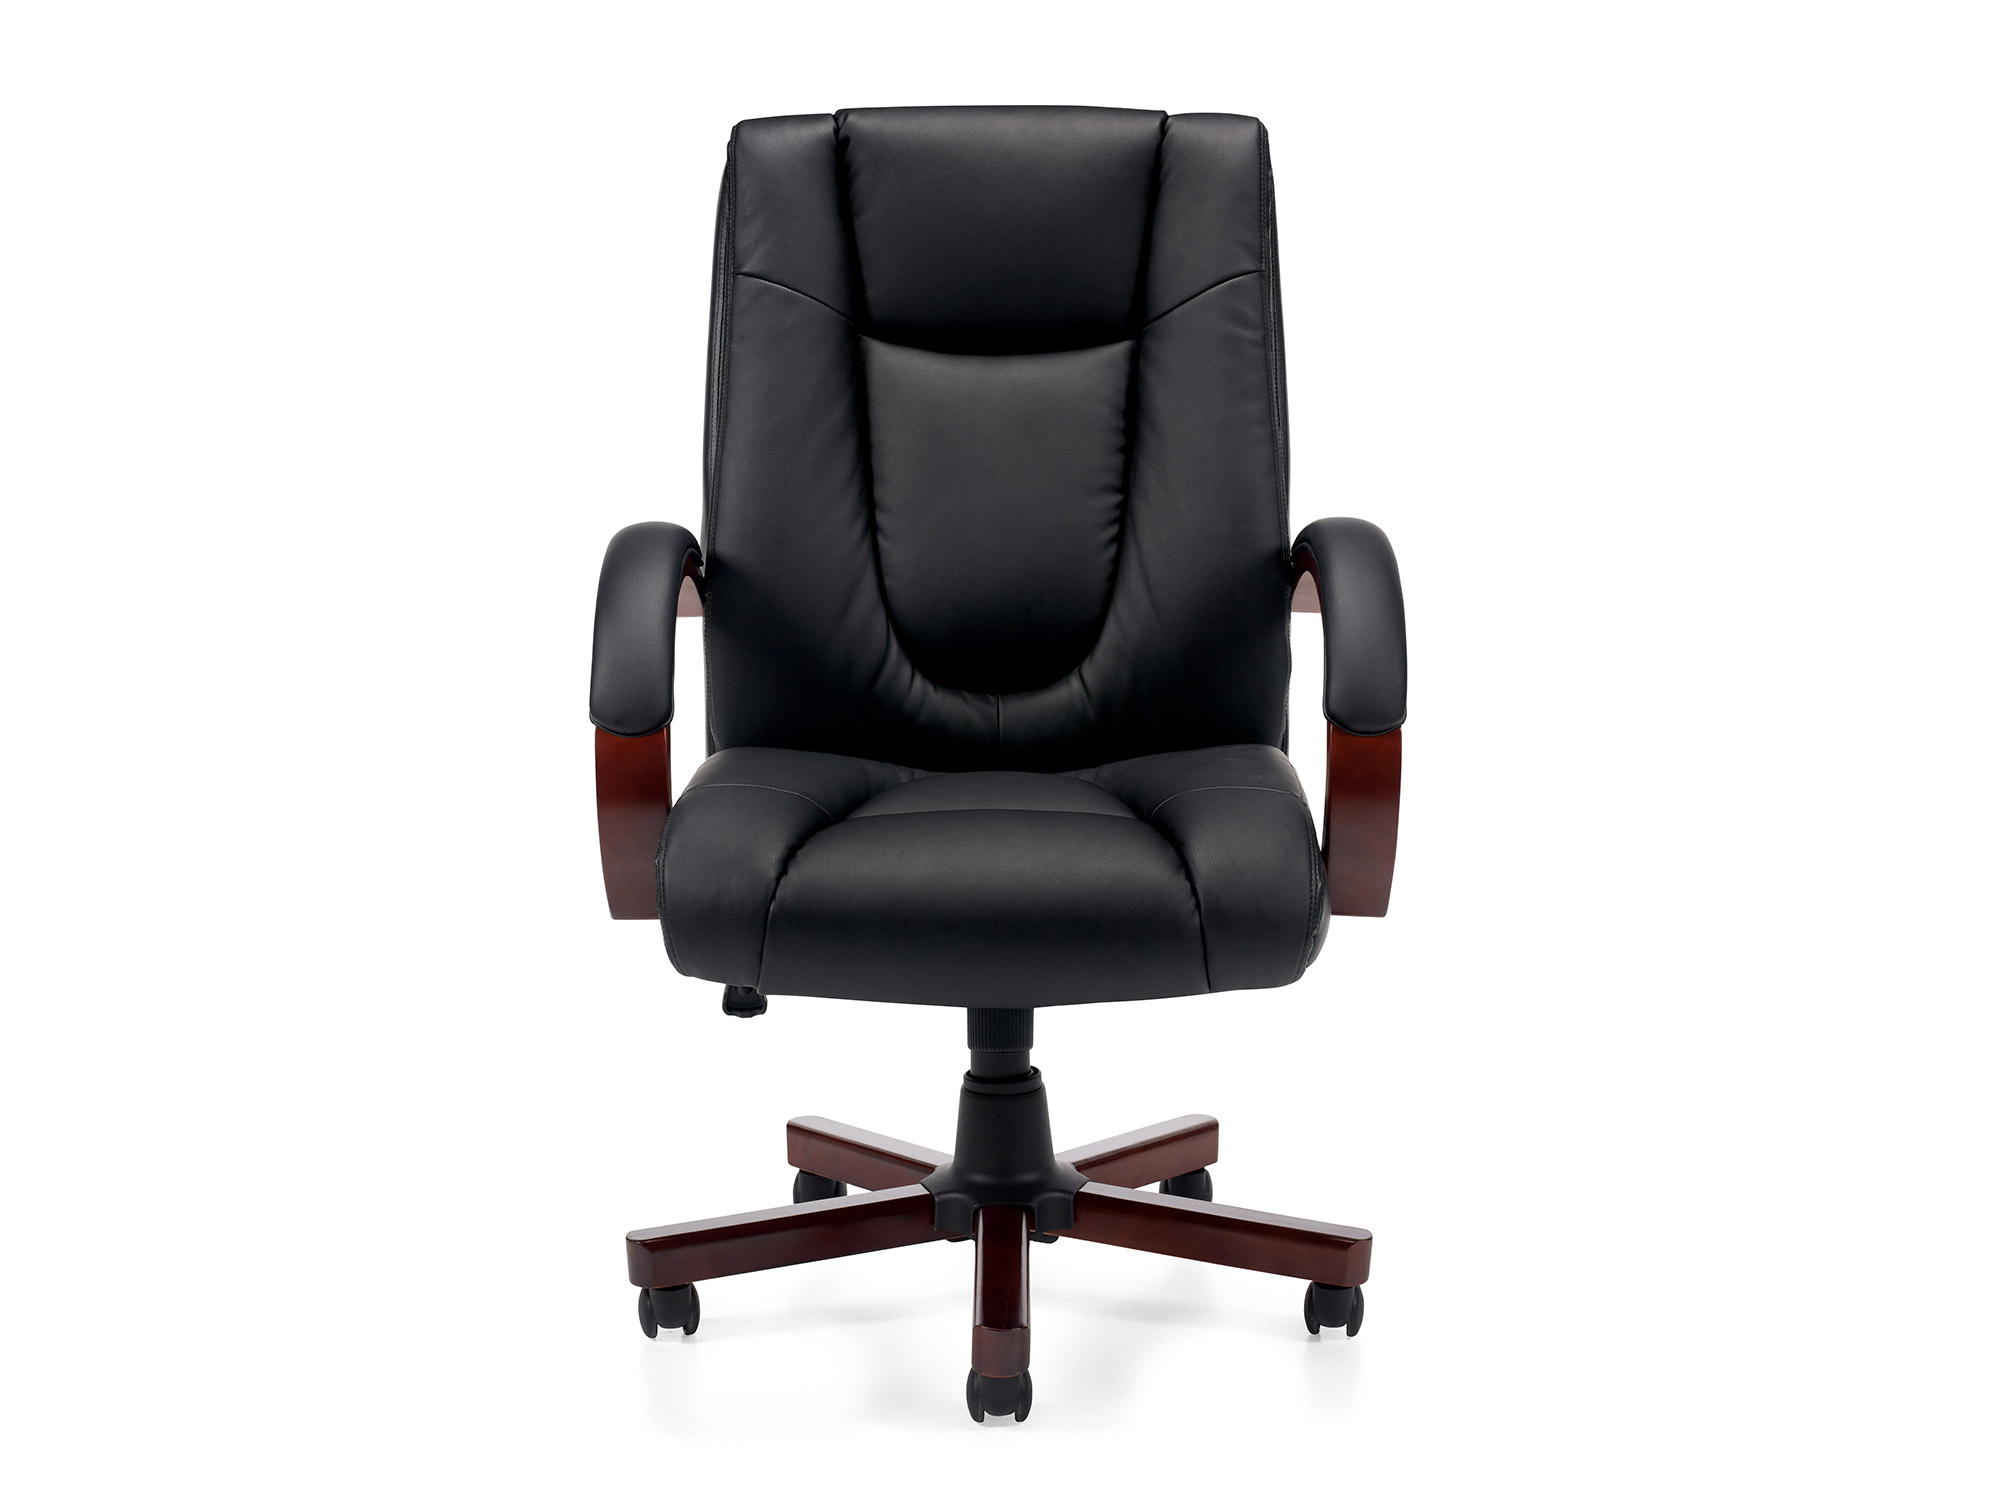 Wood Office Chair Conference Style Seating Chairs For